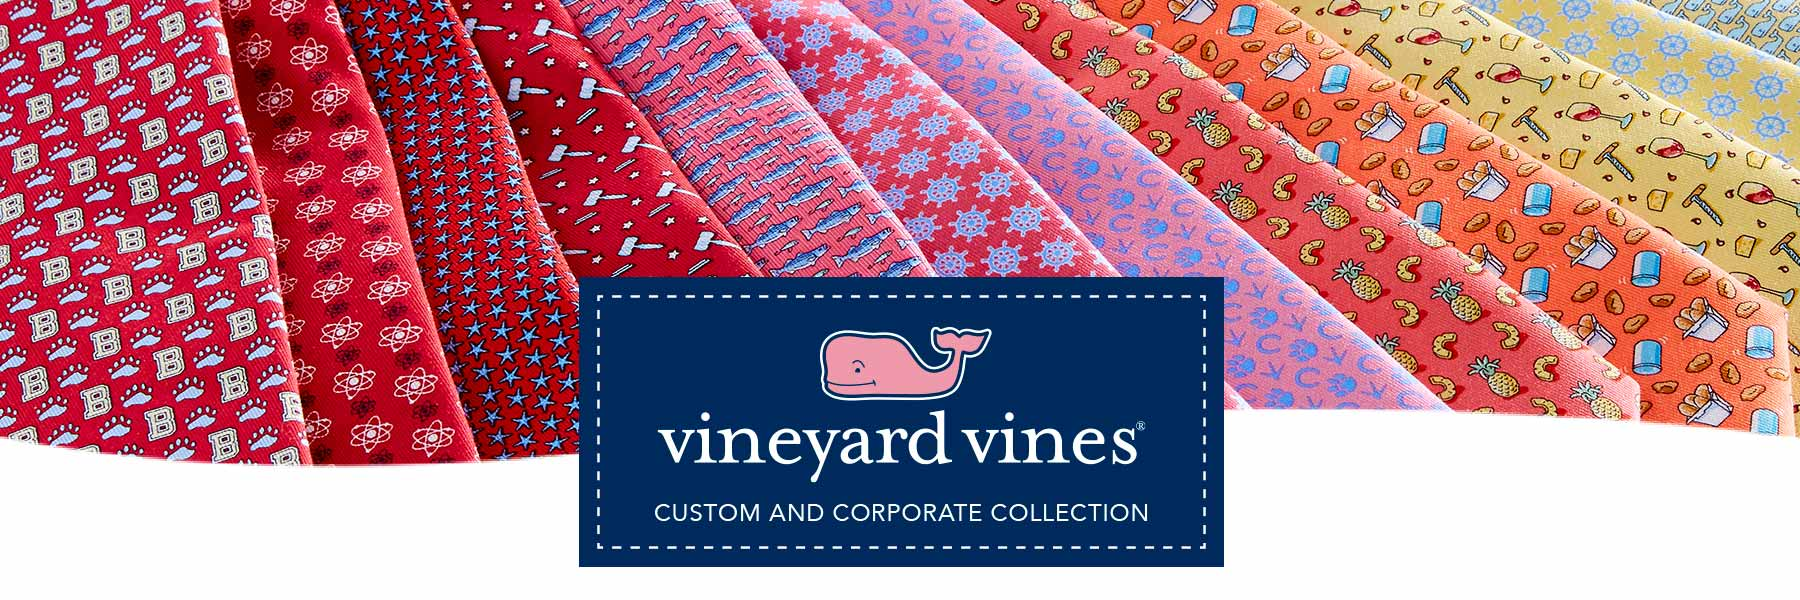 vineyard vines Custom and Corporate Collection.